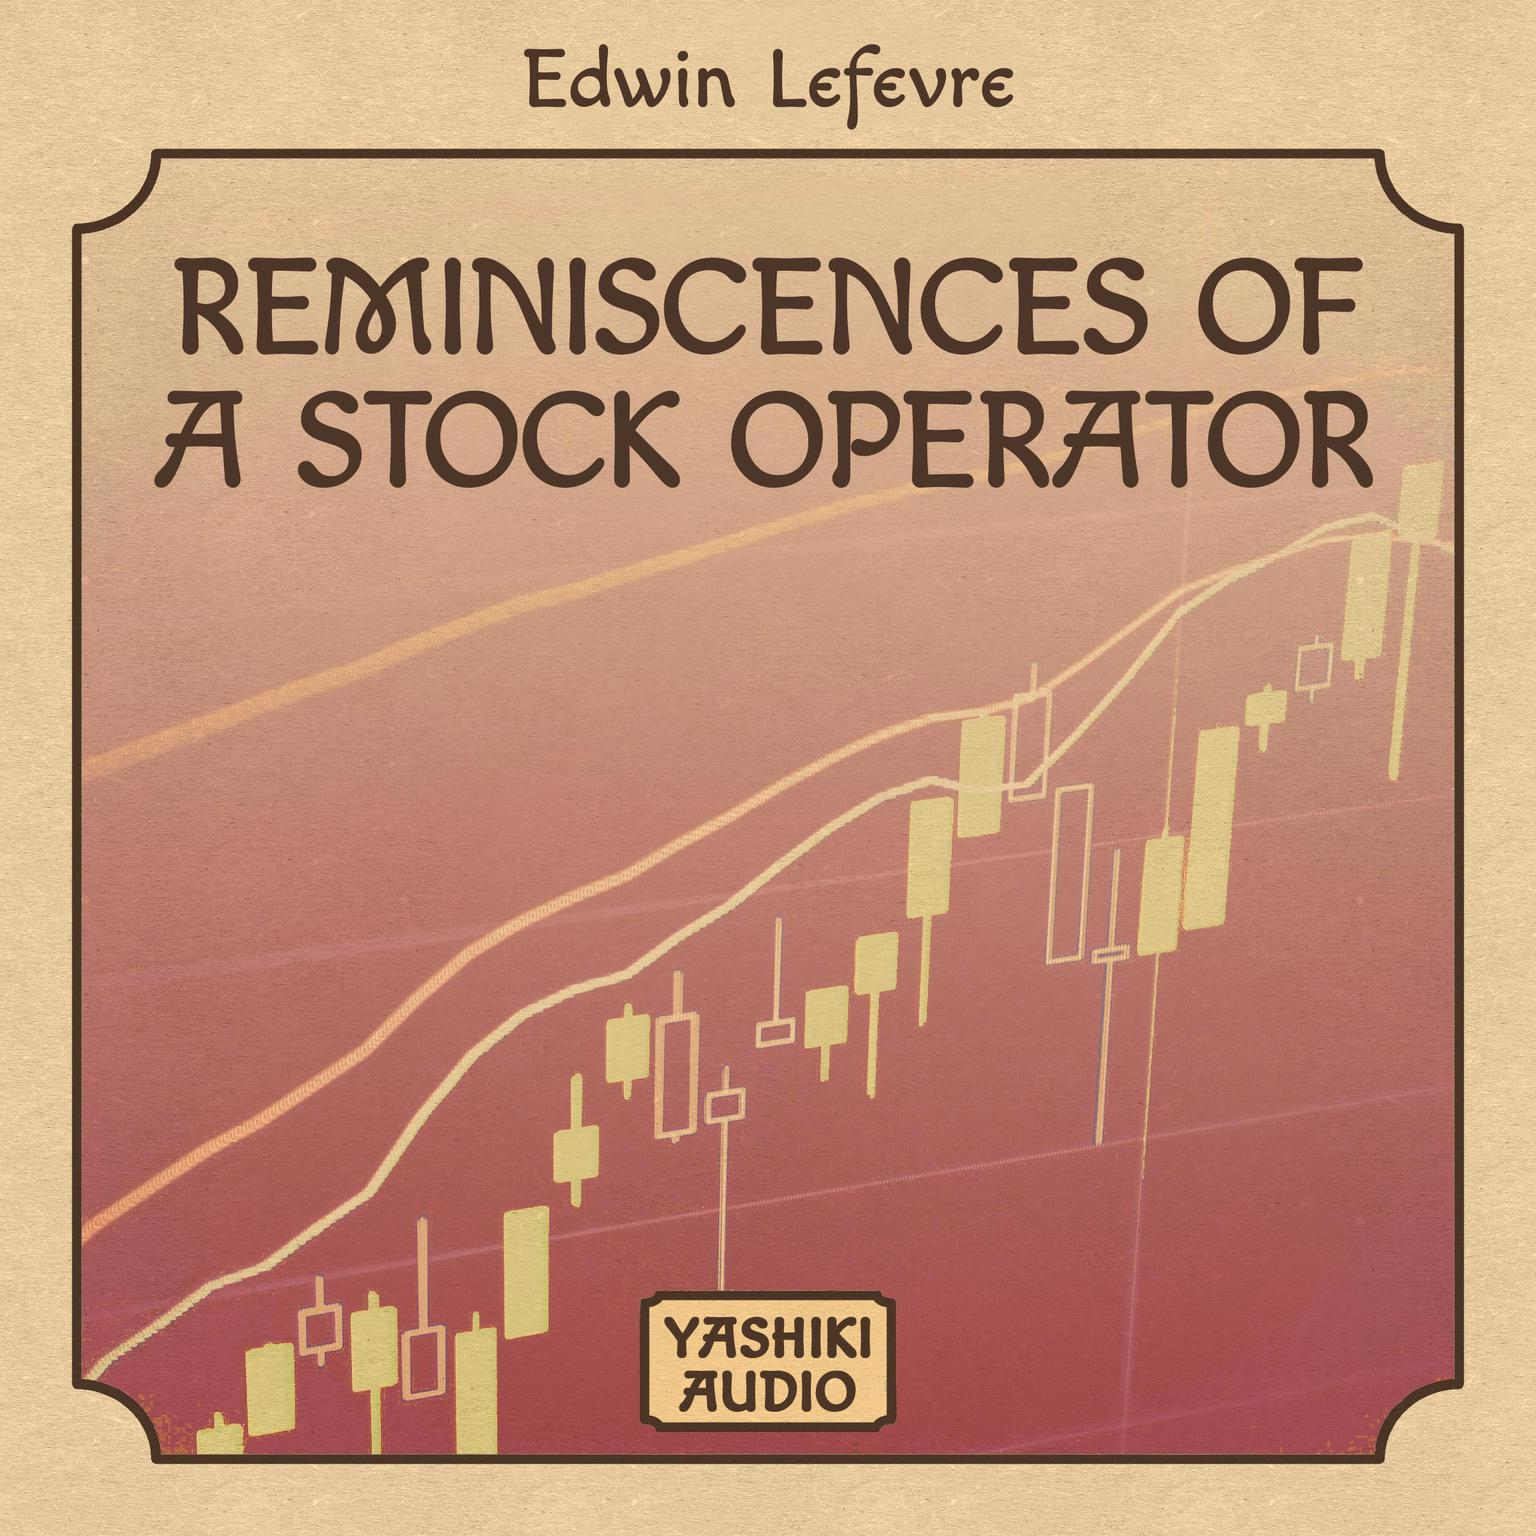 Reminiscences of a Stock Operator Audiobook, by Edwin Lefevre